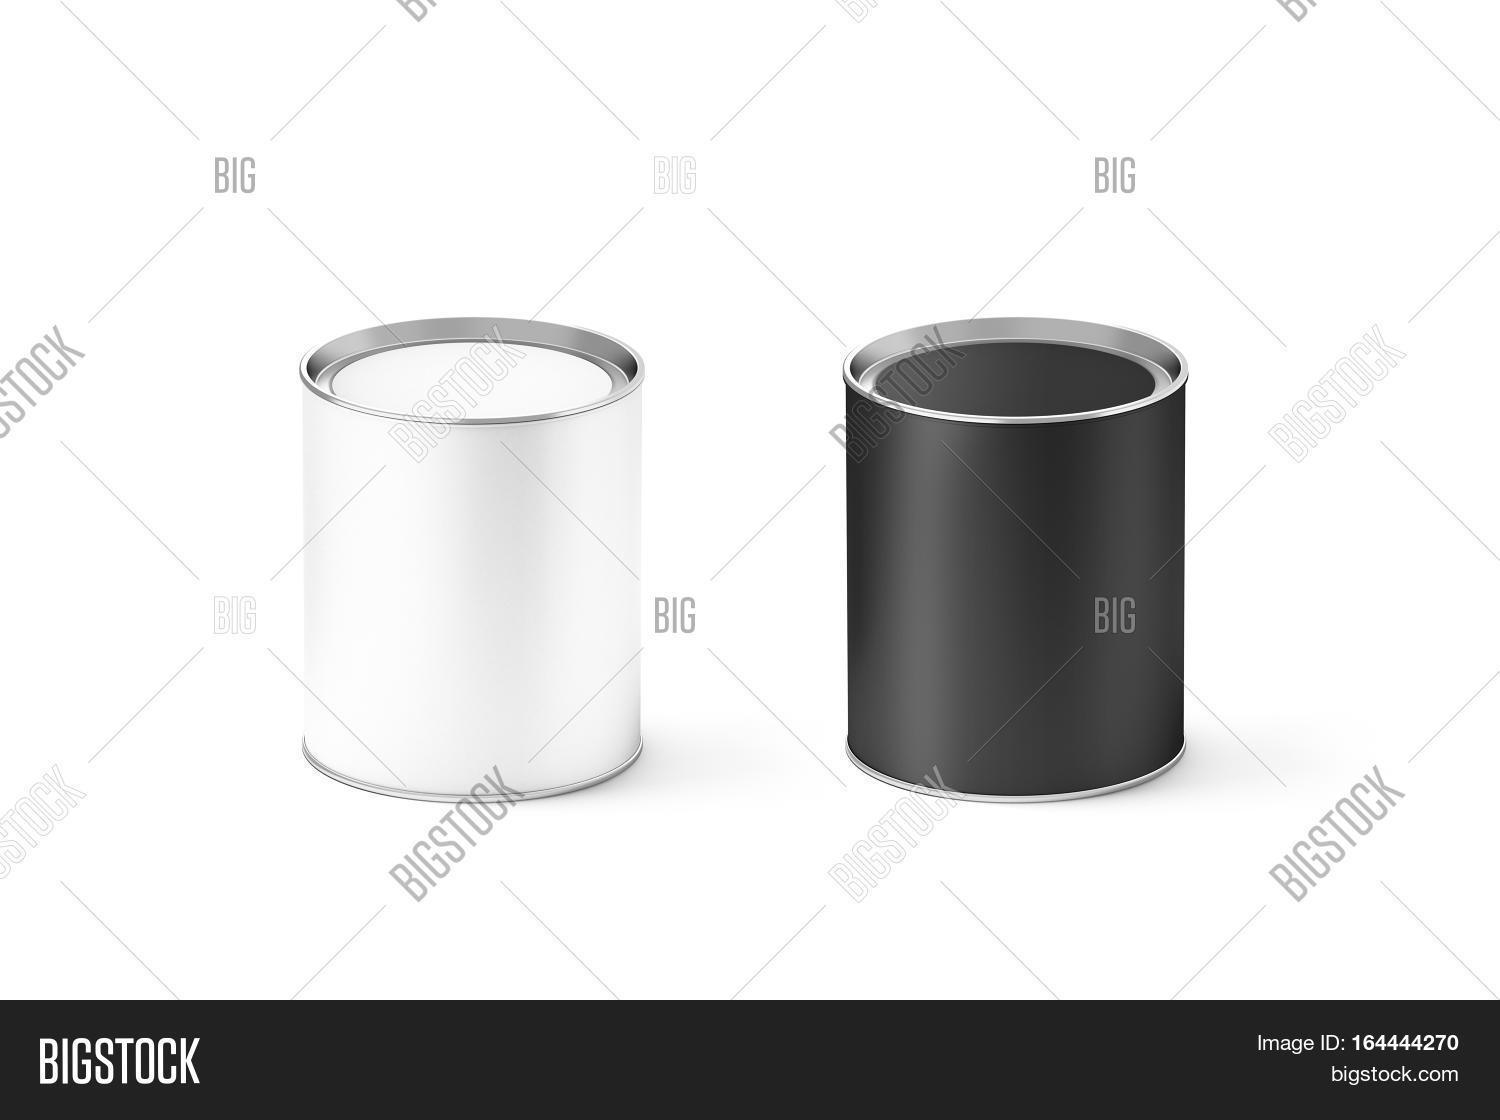 cylinder packaging template - blank black white cylinder tin can image photo bigstock